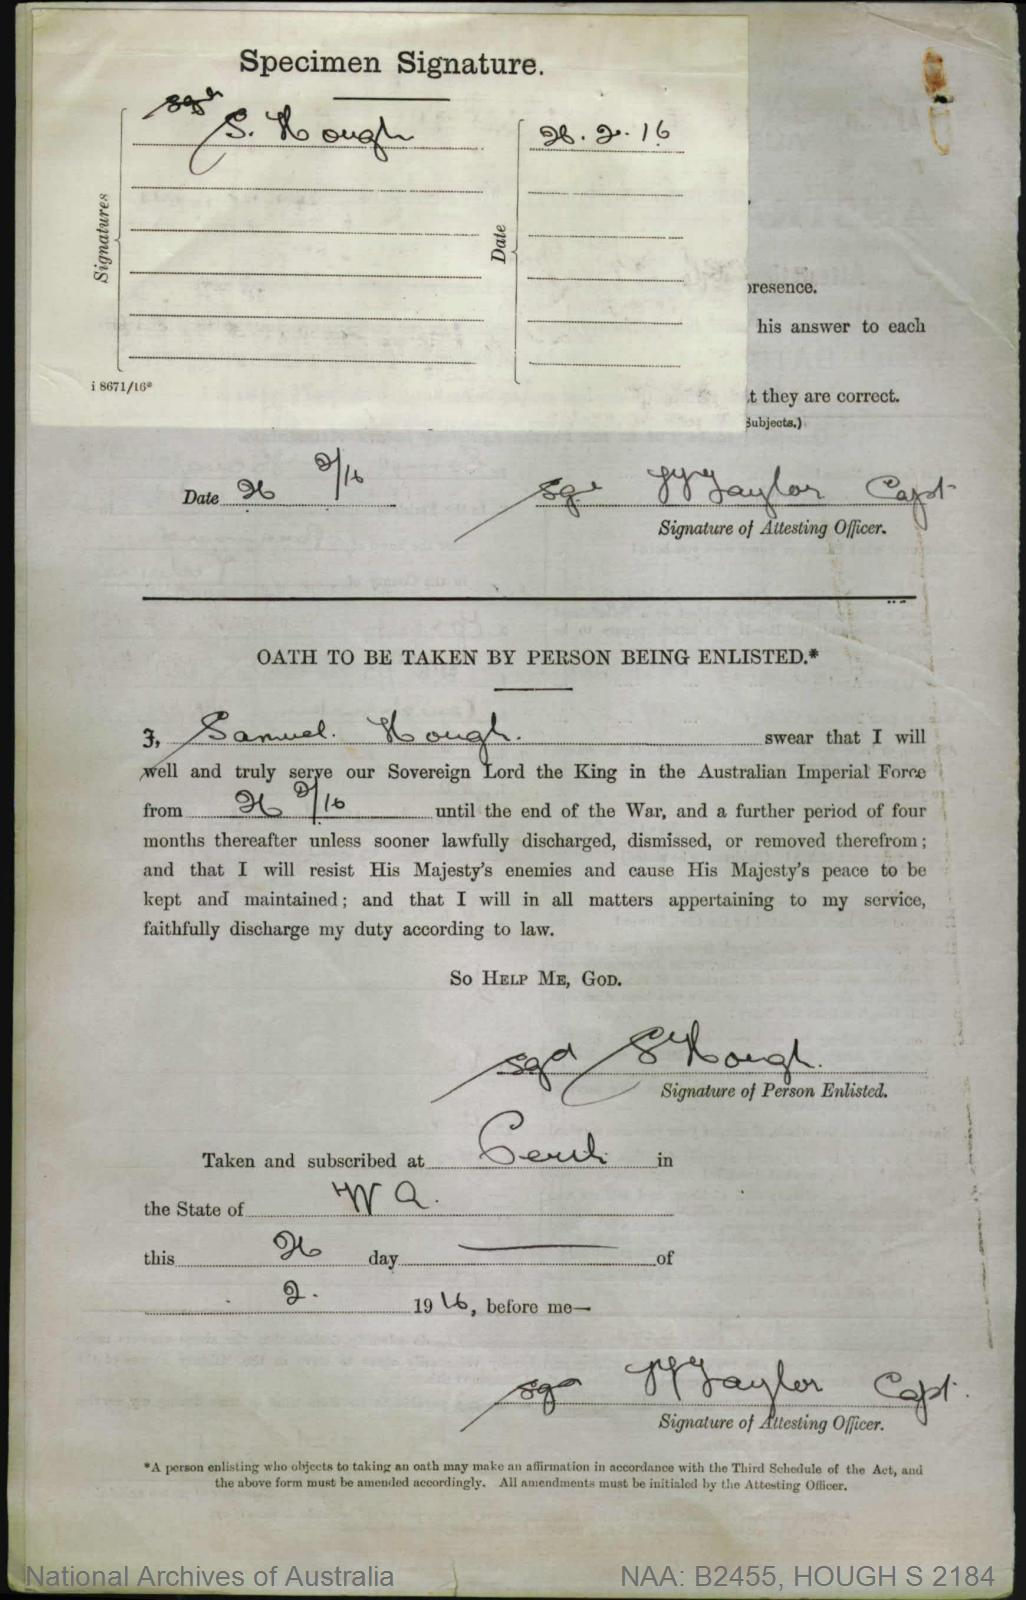 HOUGH Samuel : Service Number - 2184 : Place of Birth - Melbourne Vic : Place of Enlistment - Perth WA : Next of Kin - (Father) HOUGH Herbert